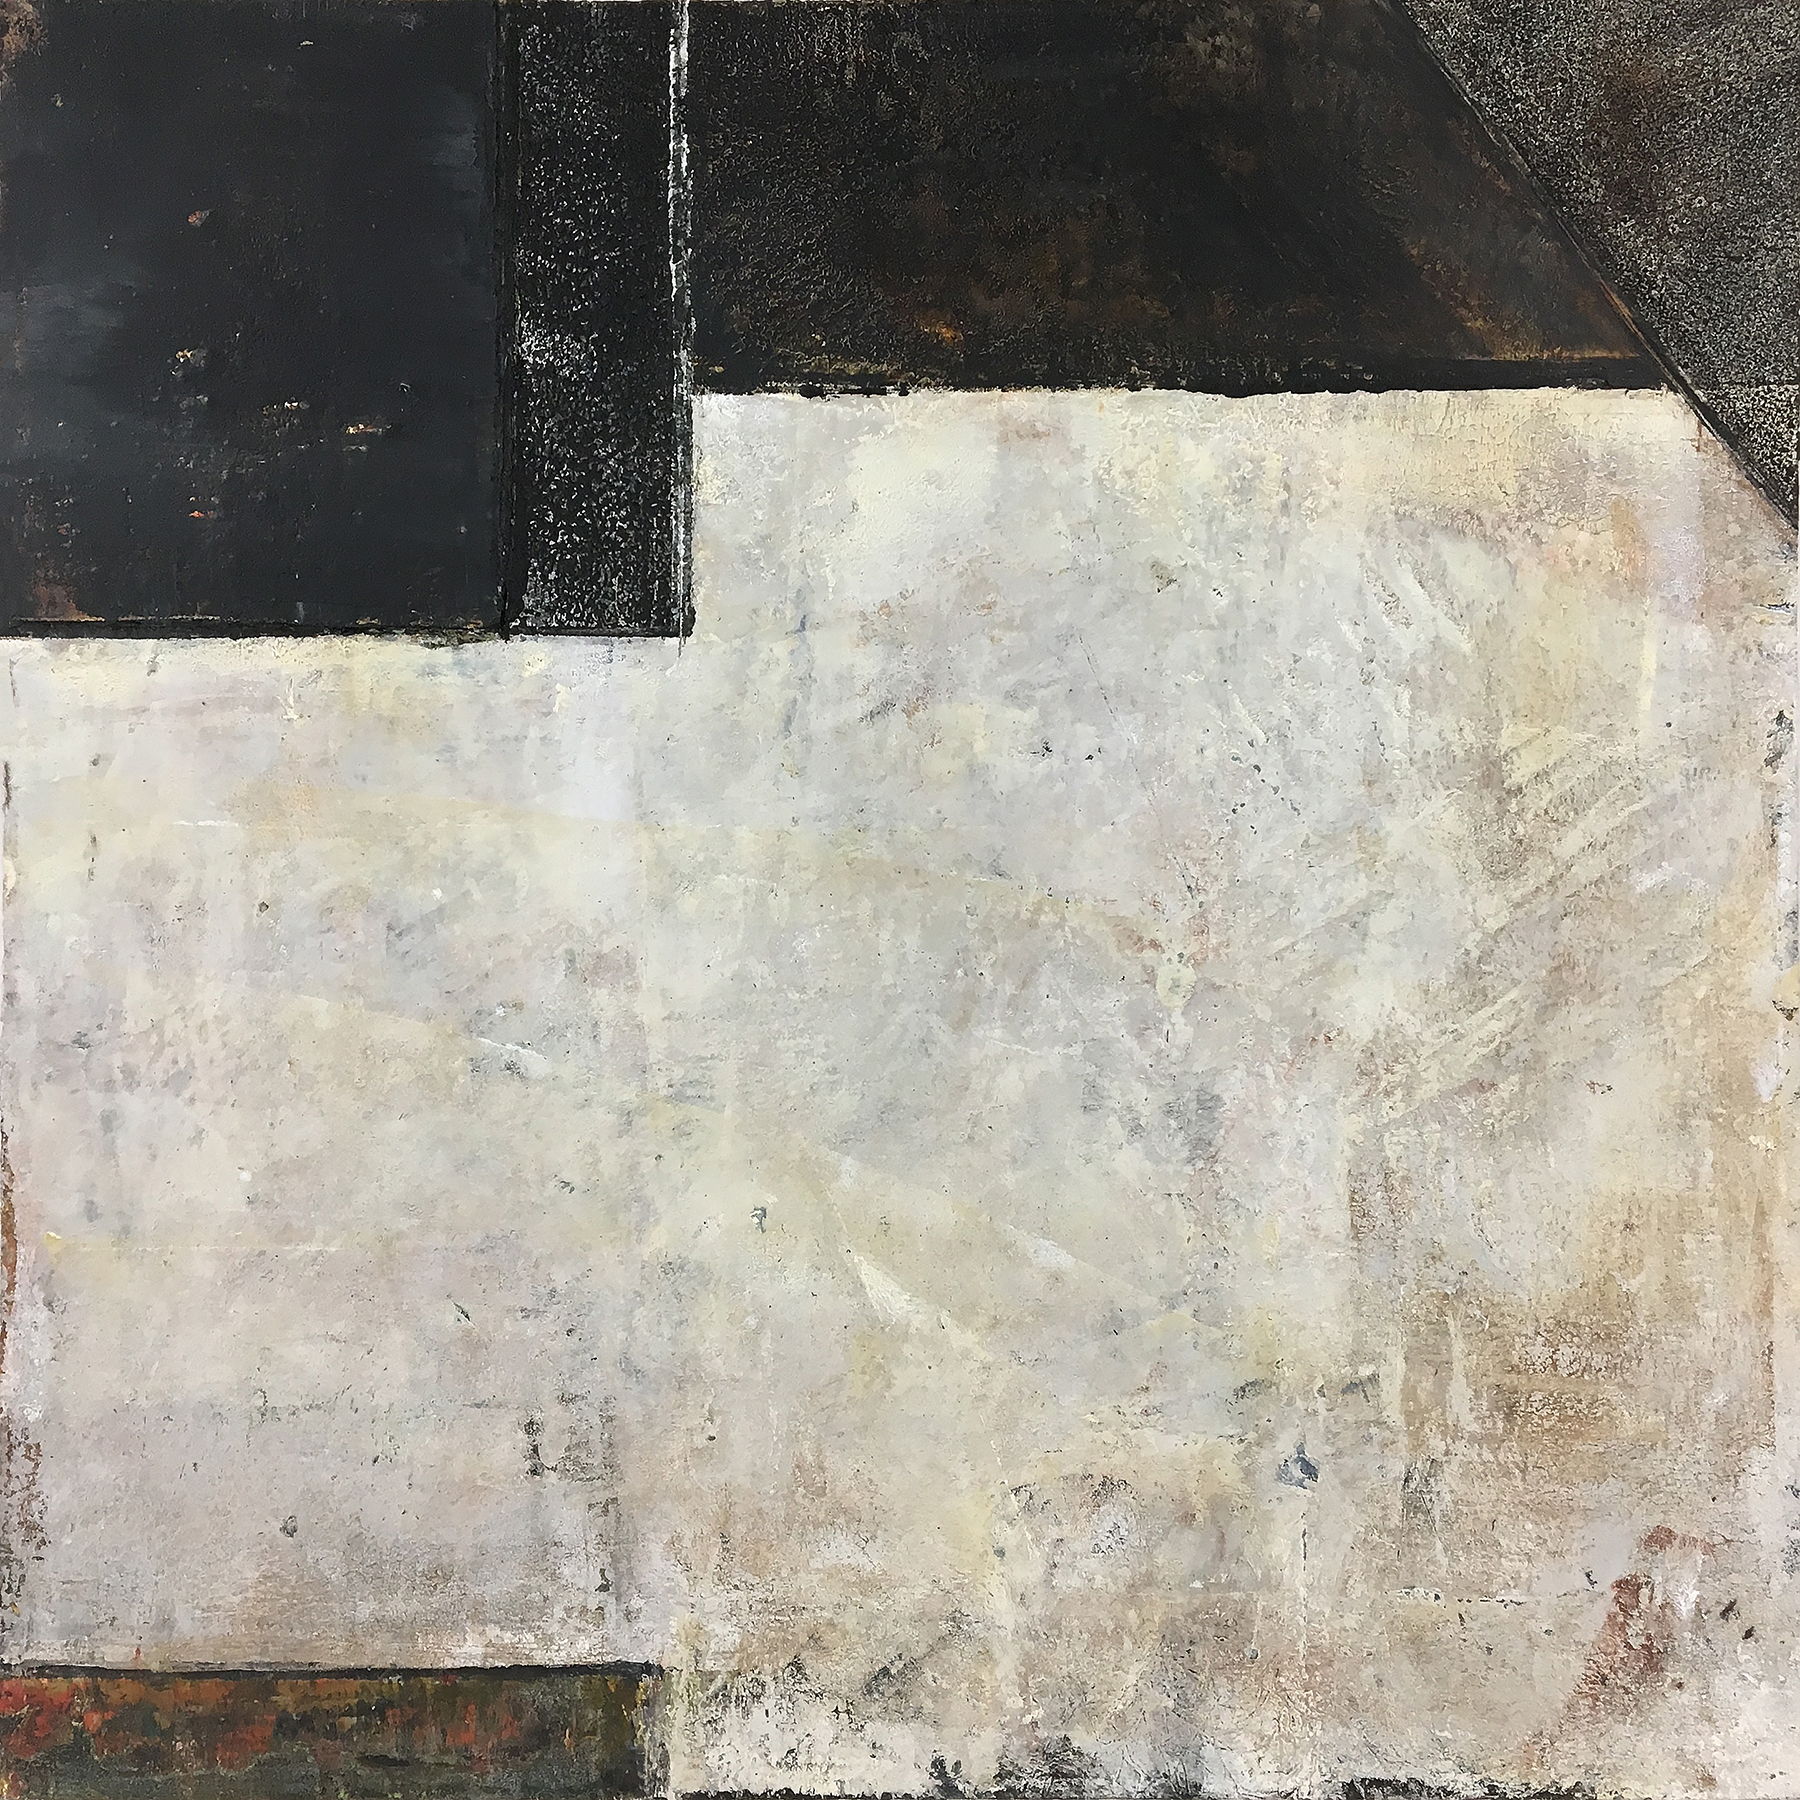 adobe y negro (v) . 16 x 16 inches, oil/cold wax/wood ash on panel, 2018.